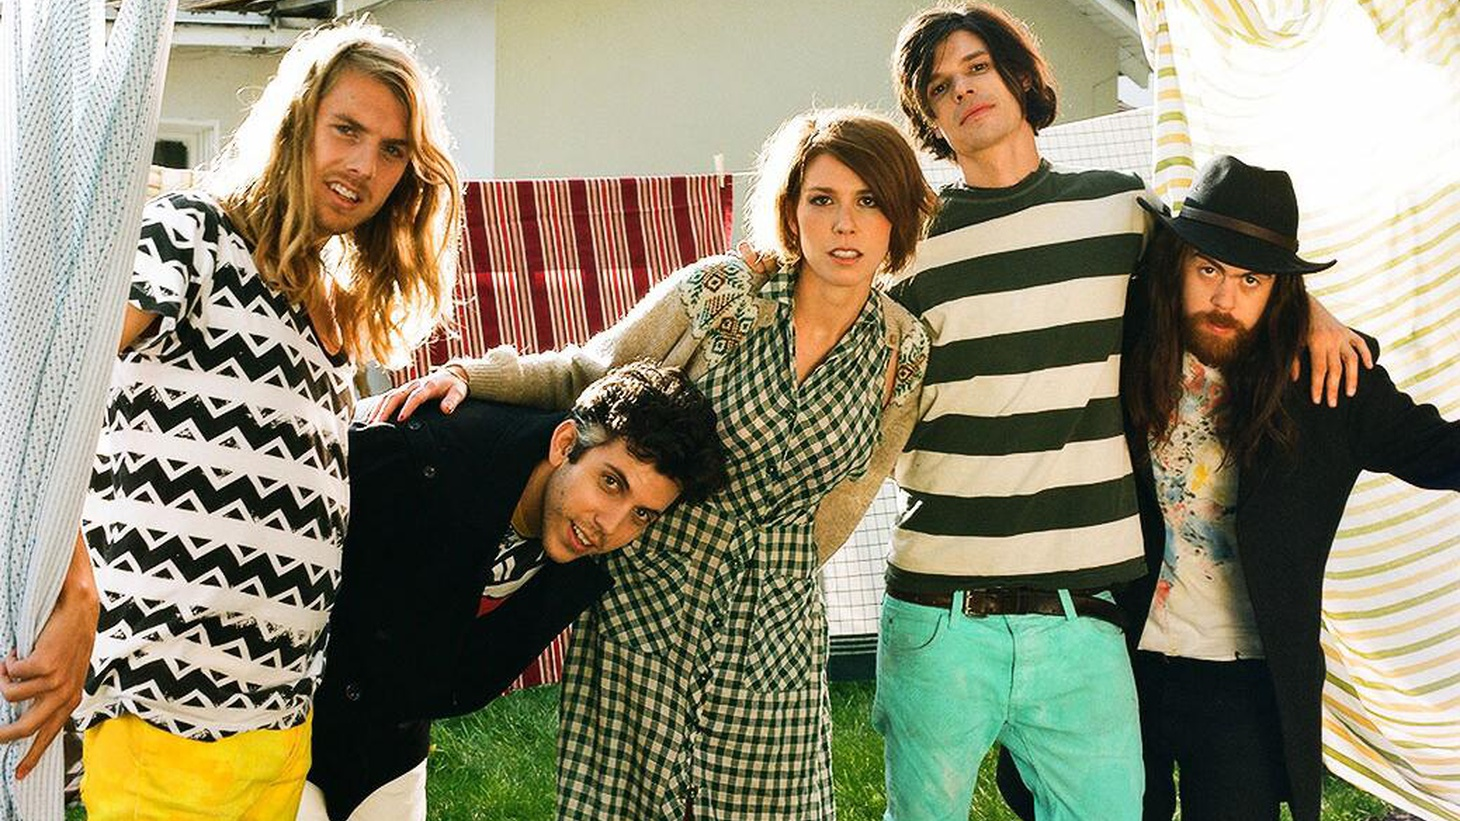 The five globe-trotting members of Grouplove met on the isle of Crete and had so much fun making music together that they pooled their funds and recorded their debut here in Los Angeles. Lucky for us, they'll reconvene to perform their songs live on Morning Becomes Eclectic when they join us at 11:15am.